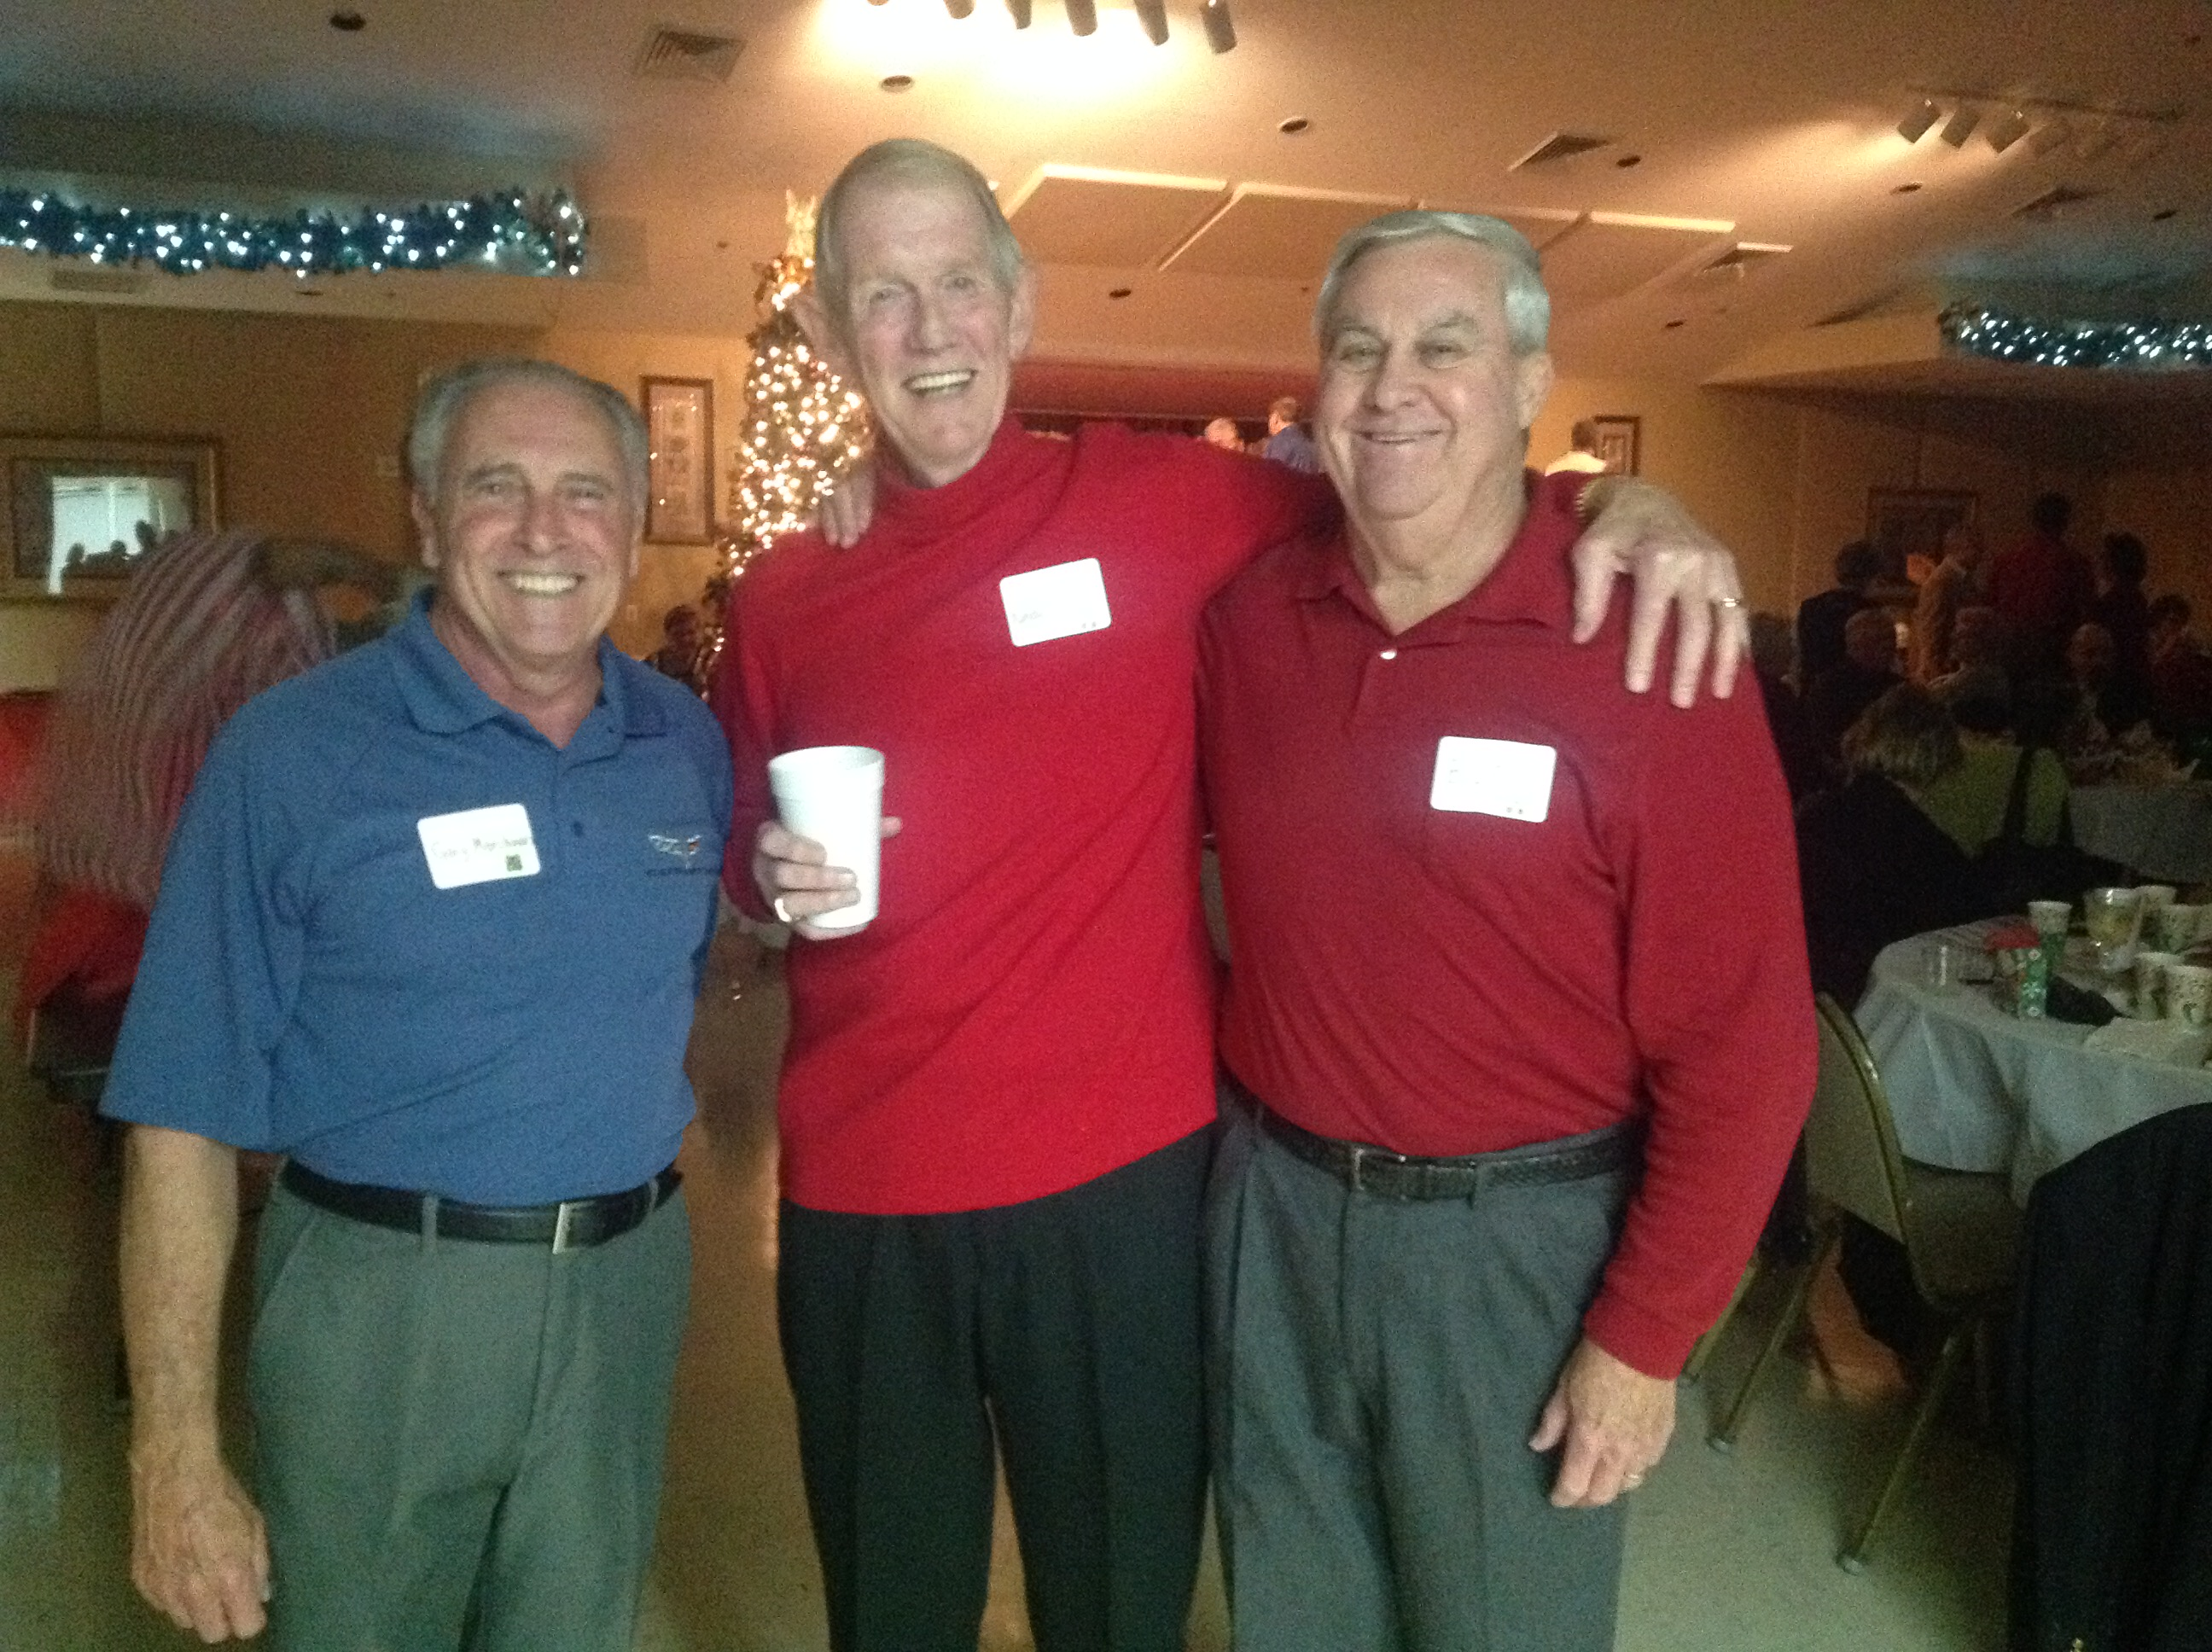 11-Gary M, Randy R & Bill, a Friend from Tampabay Vettes.JPG